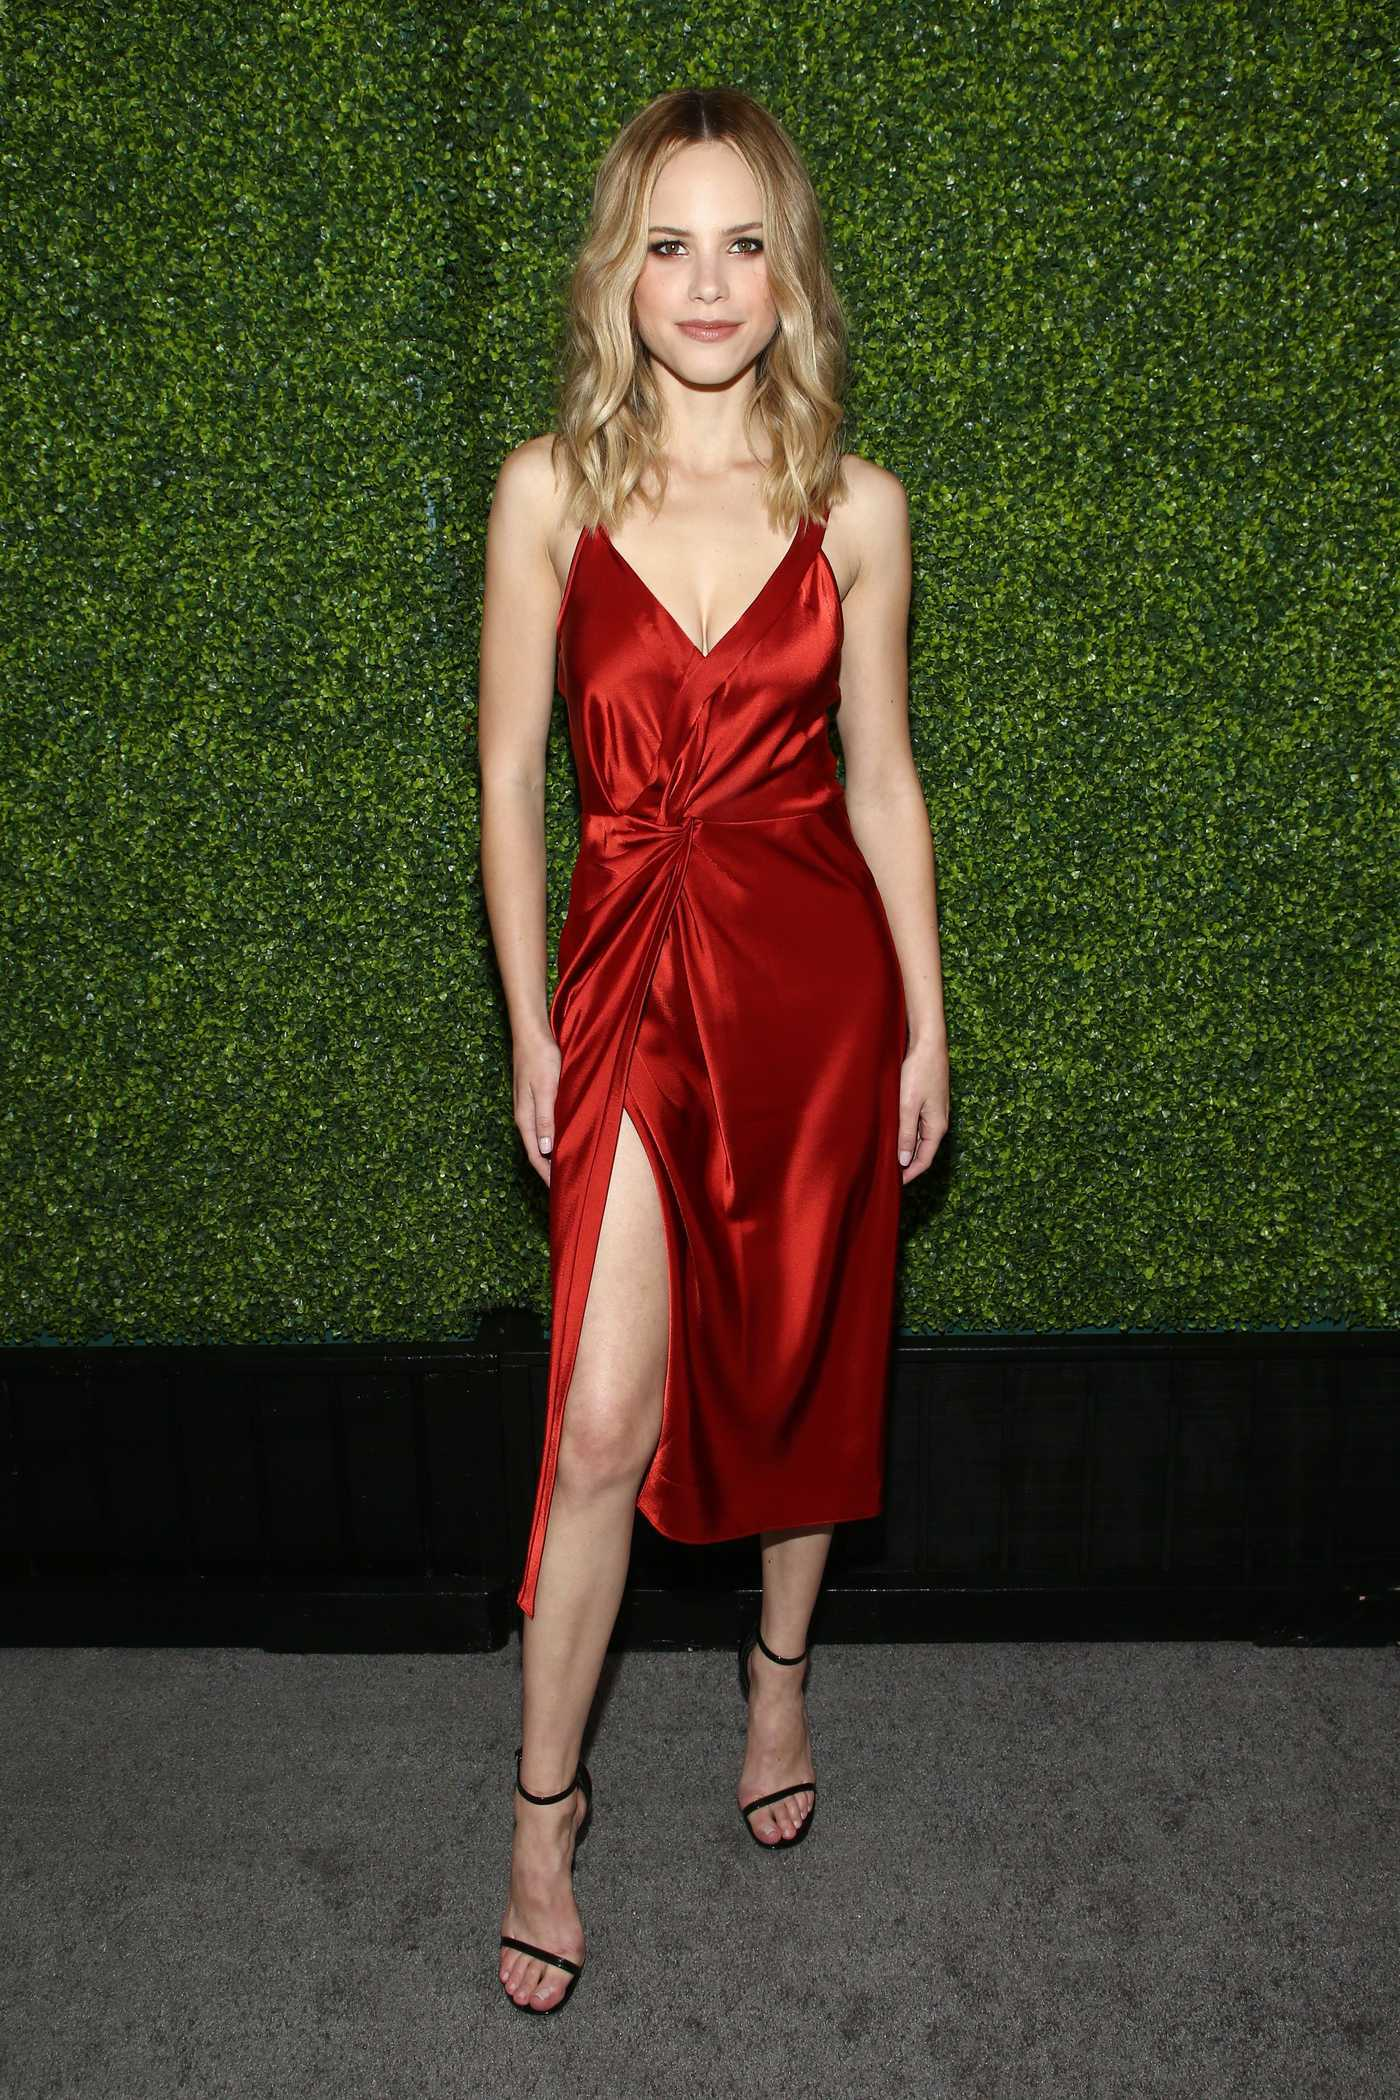 Halston Sage Attends the FOX Fall Party in LA 09/25/2017